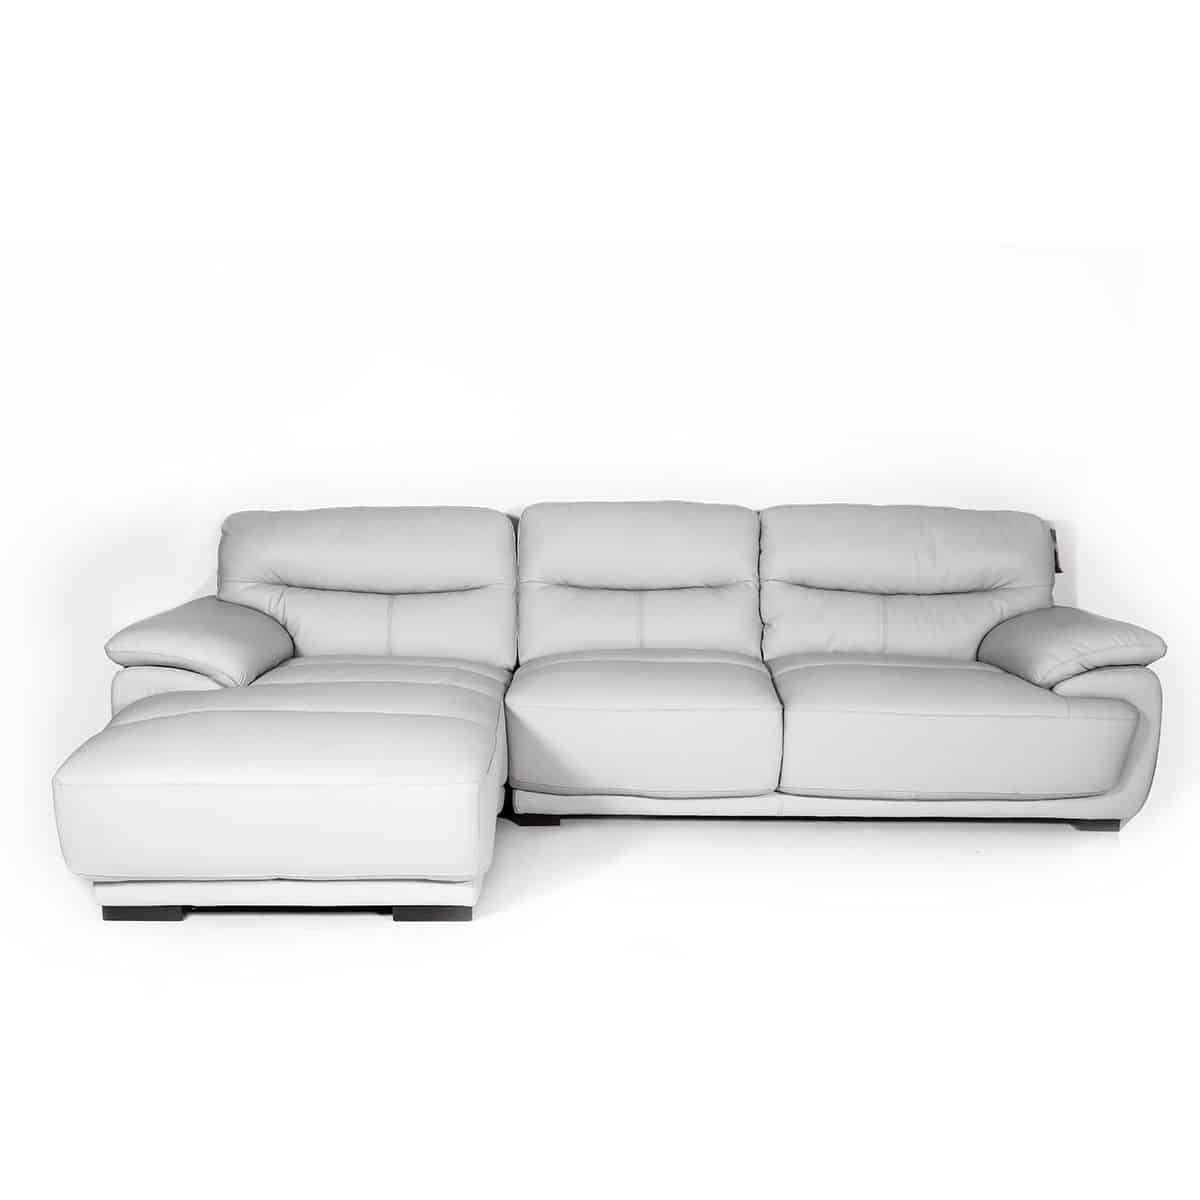 Ghế sofa - SOFA CORNER [L] LOWELL#2/LEATHER/SL LIGHT GRAY